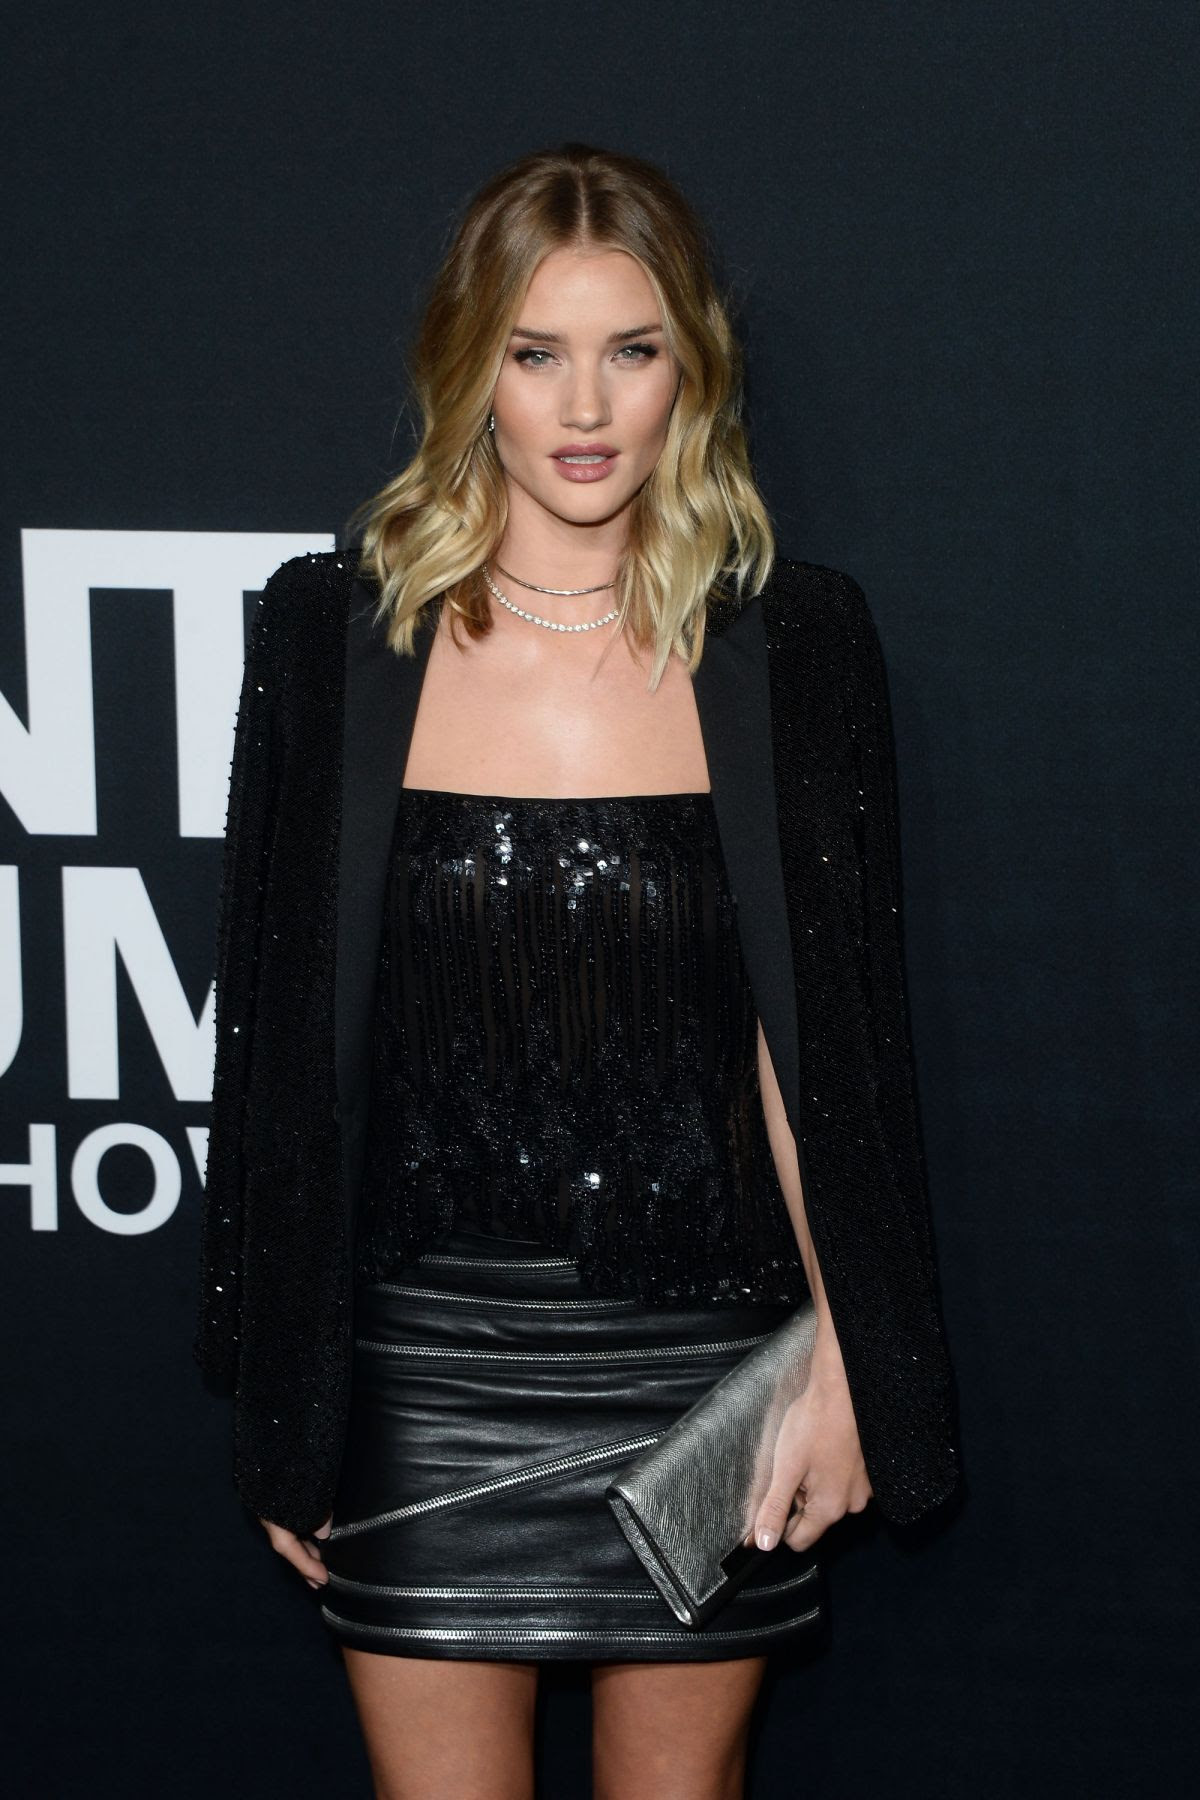 ROSIE HUNTINGTON-WHITELEY at Saint Laurent Fashion Show in Los Angeles 02/10/2016